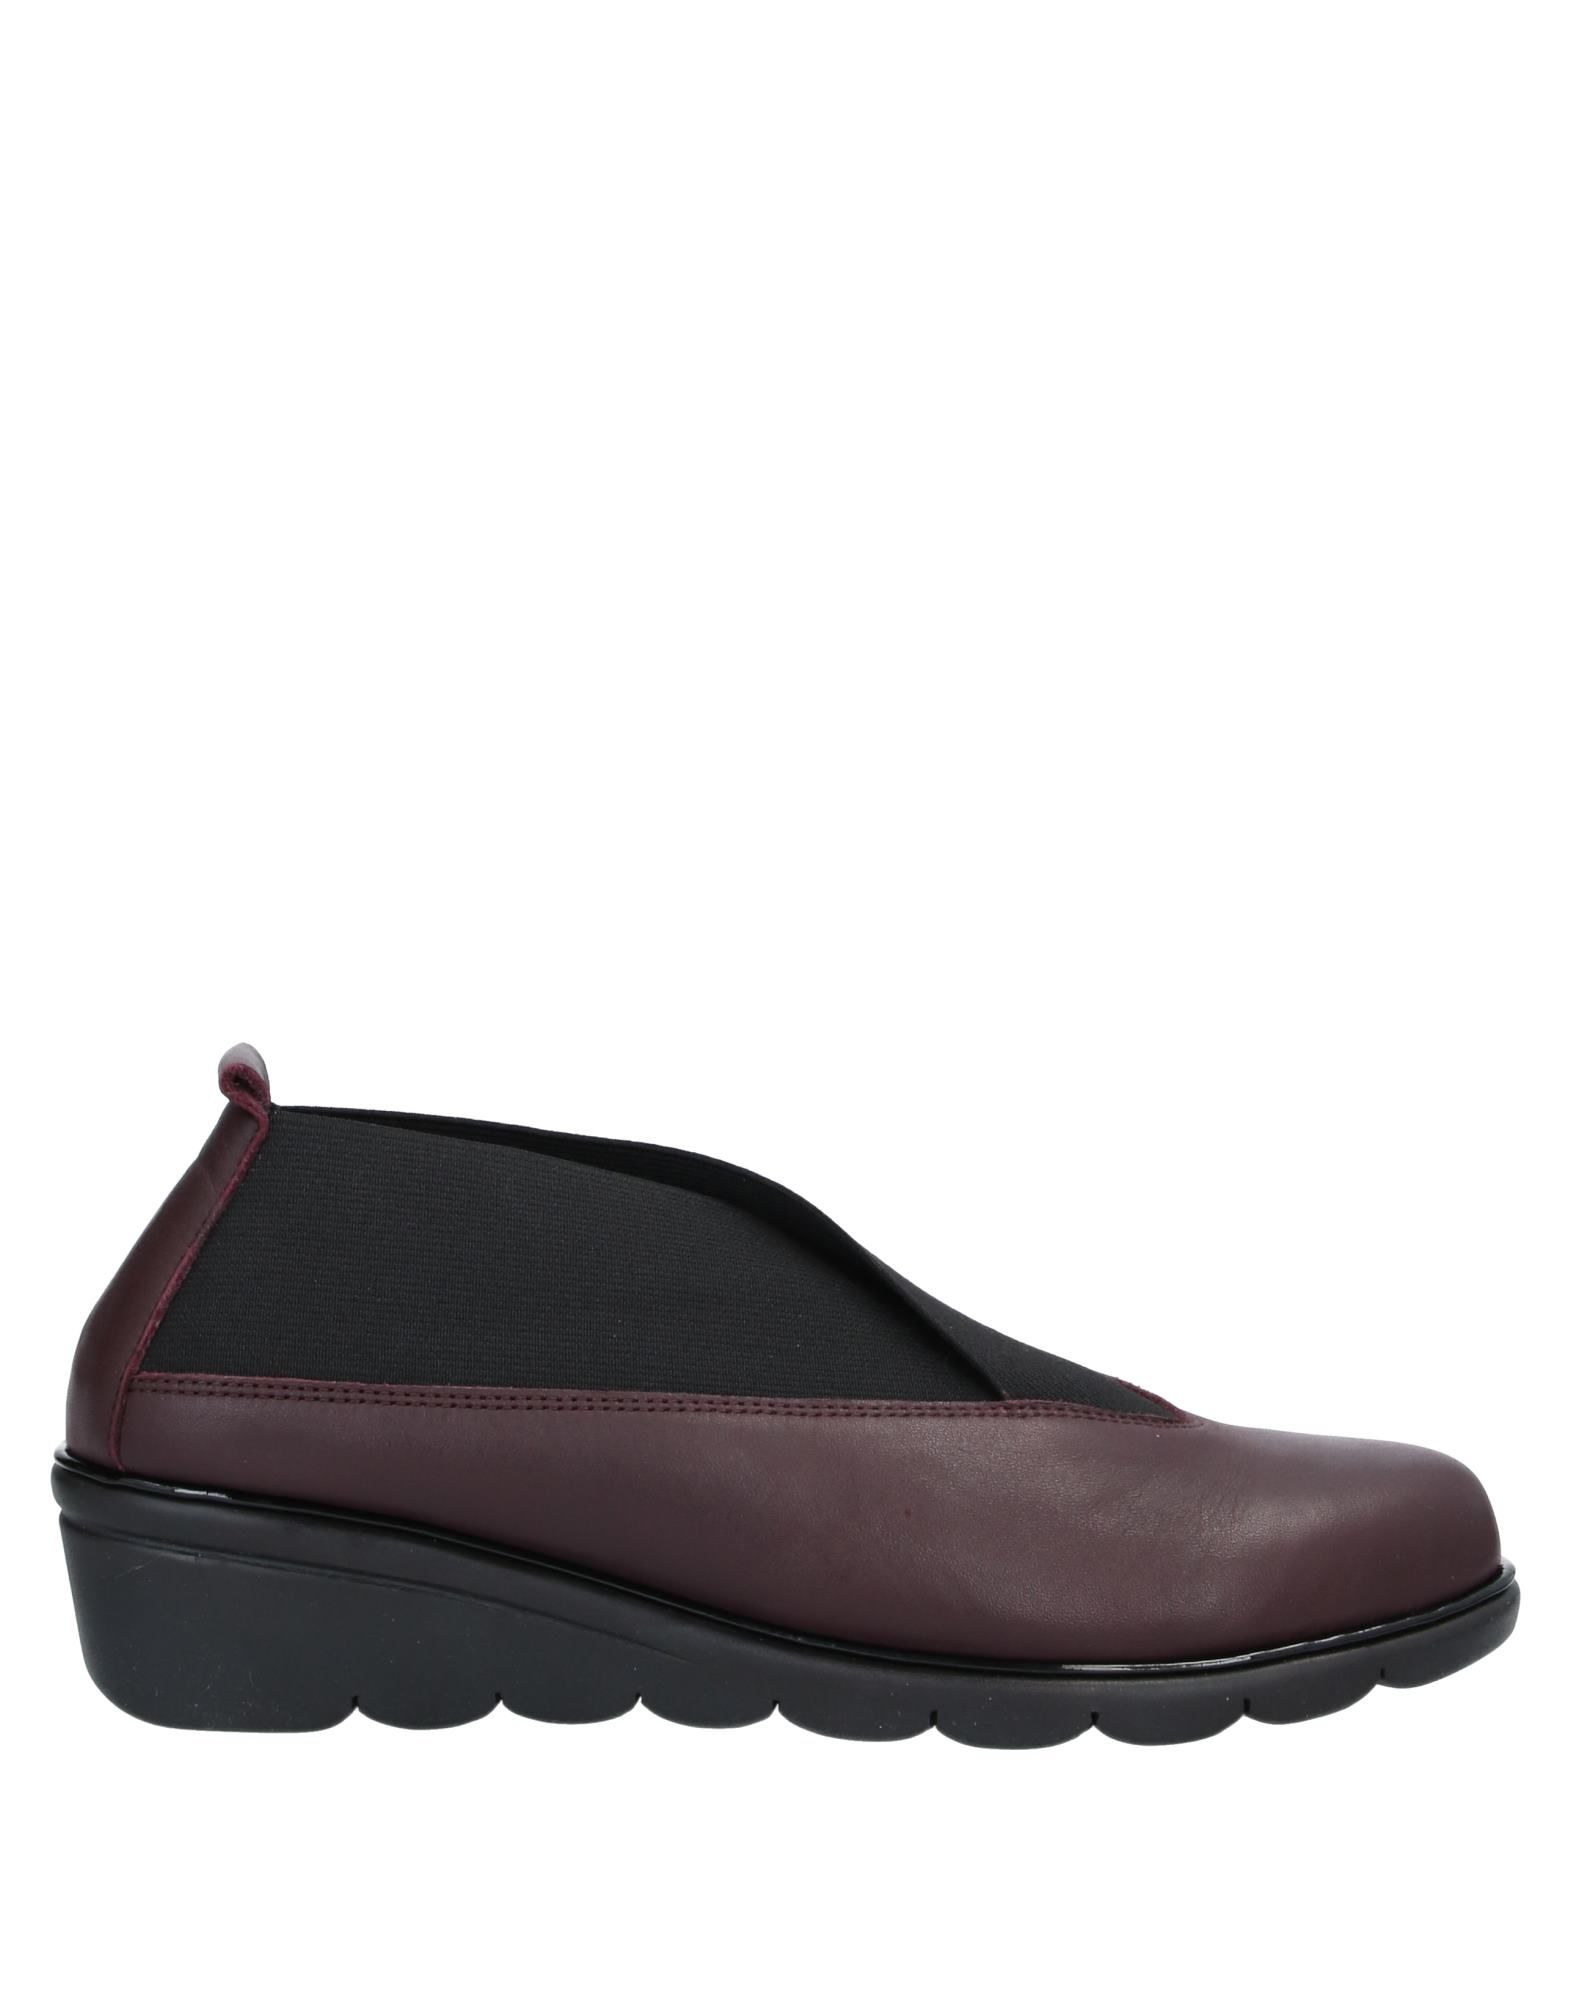 THE FLEXX Loafers. leather, no appliqués, two-tone, elasticized gores, round toeline, wedge heel, rubber wedge, leather lining, rubber cleated sole, contains non-textile parts of animal origin. Soft Leather, Textile fibers